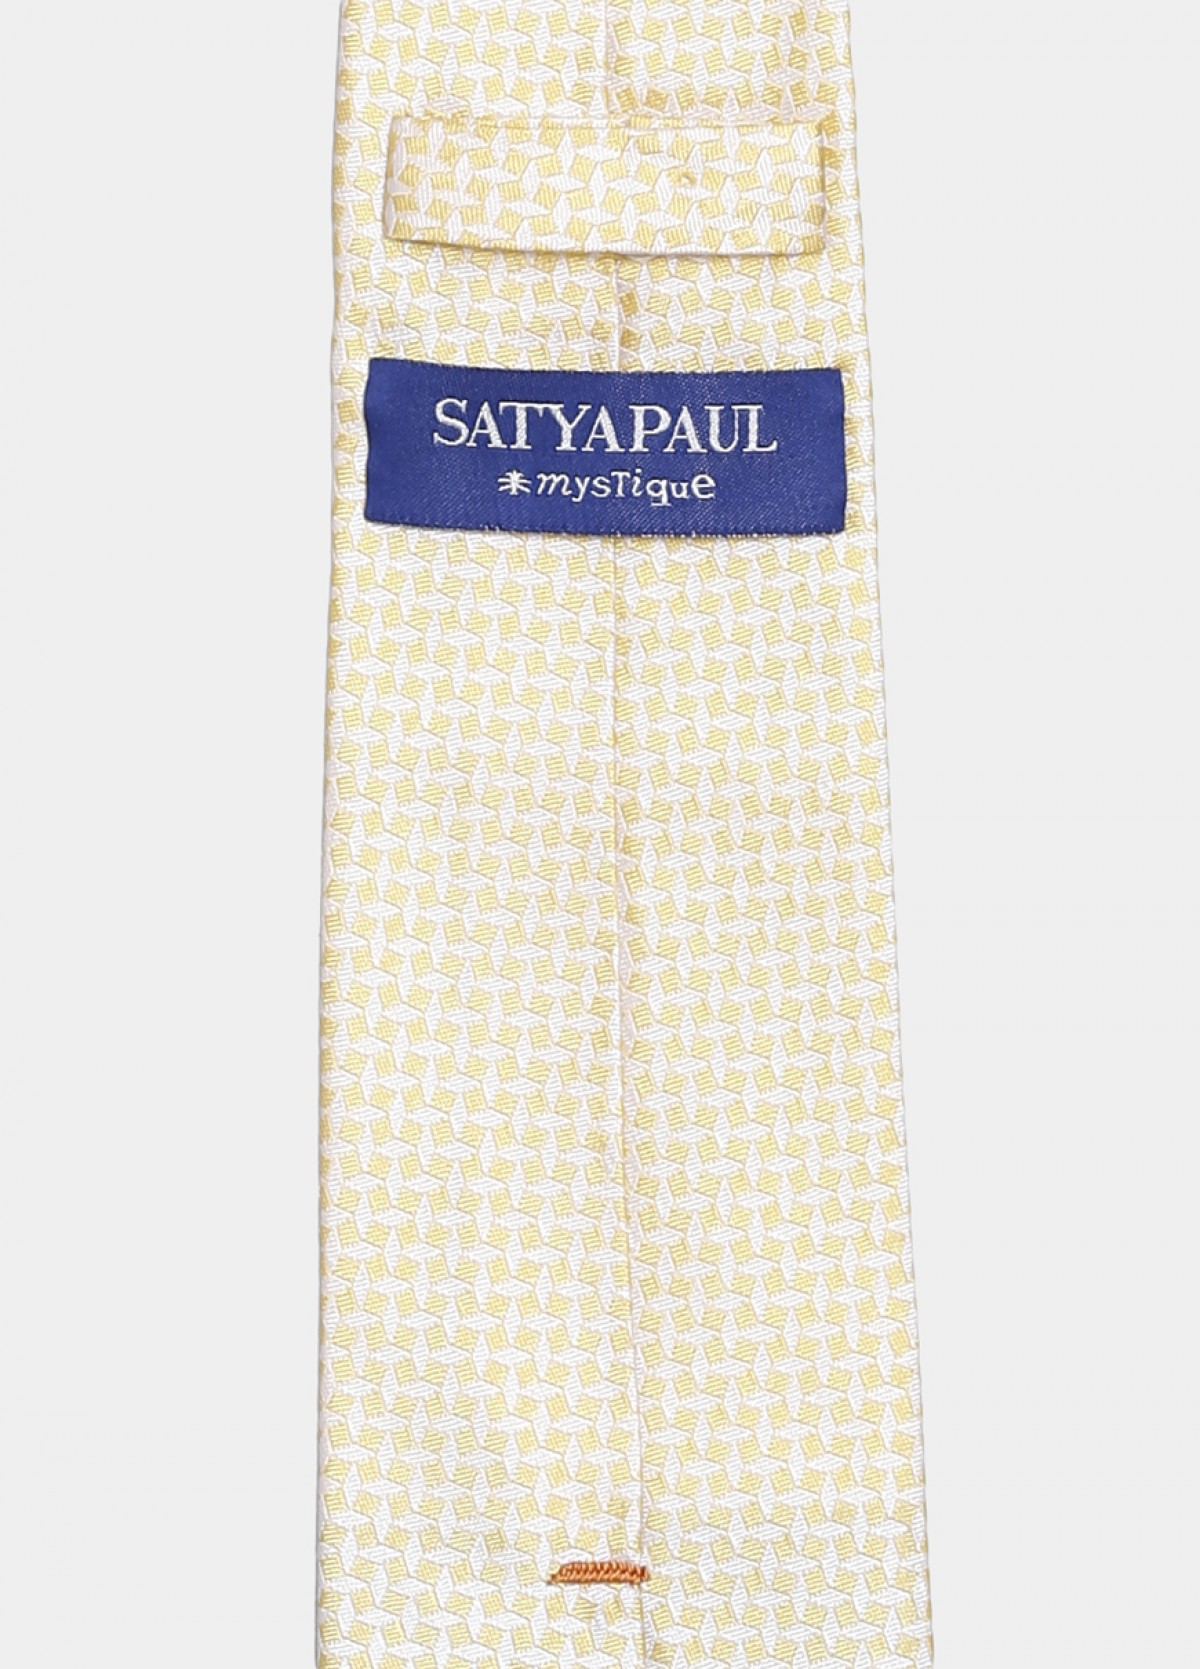 The Yellow Formal Silk Stain Resistant